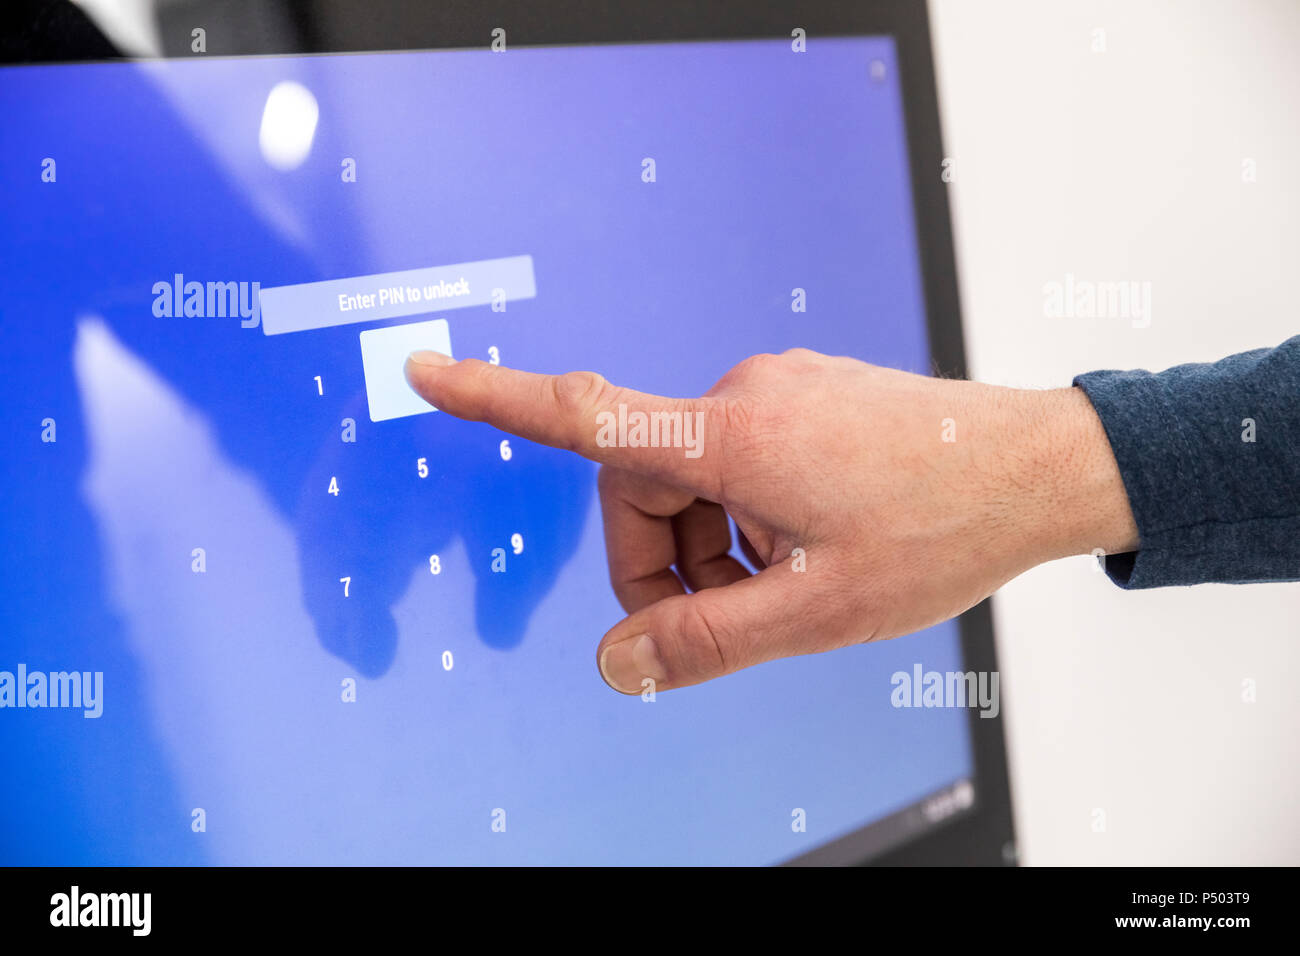 Businessman entering PIN code on touch screen - Stock Image